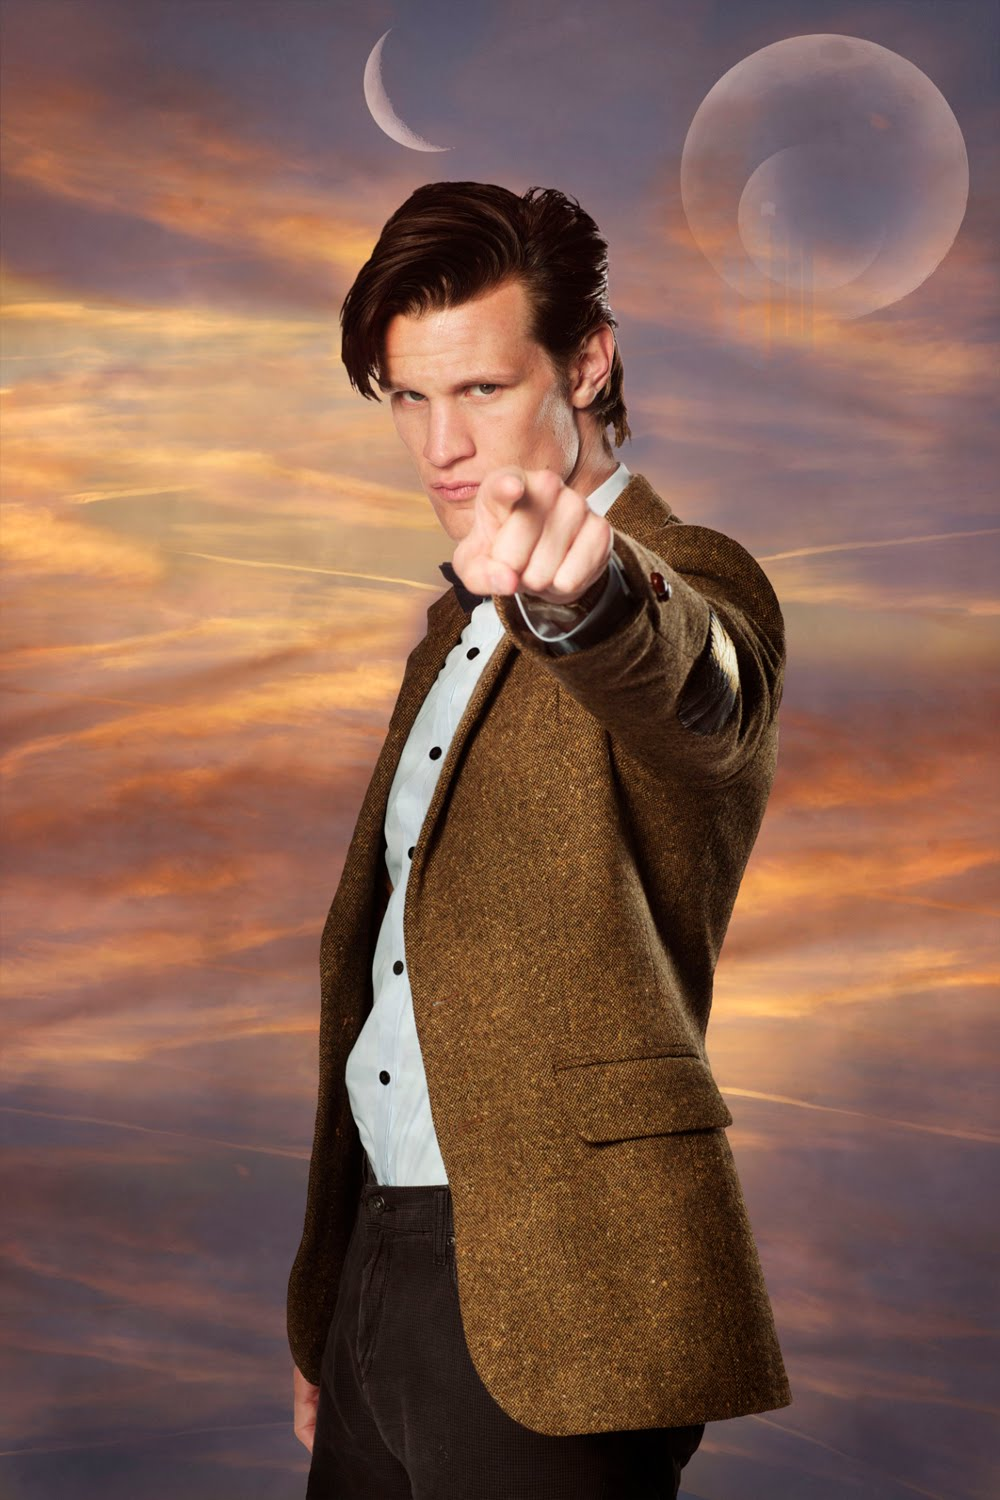 Matt Smith, the 11th Doctor